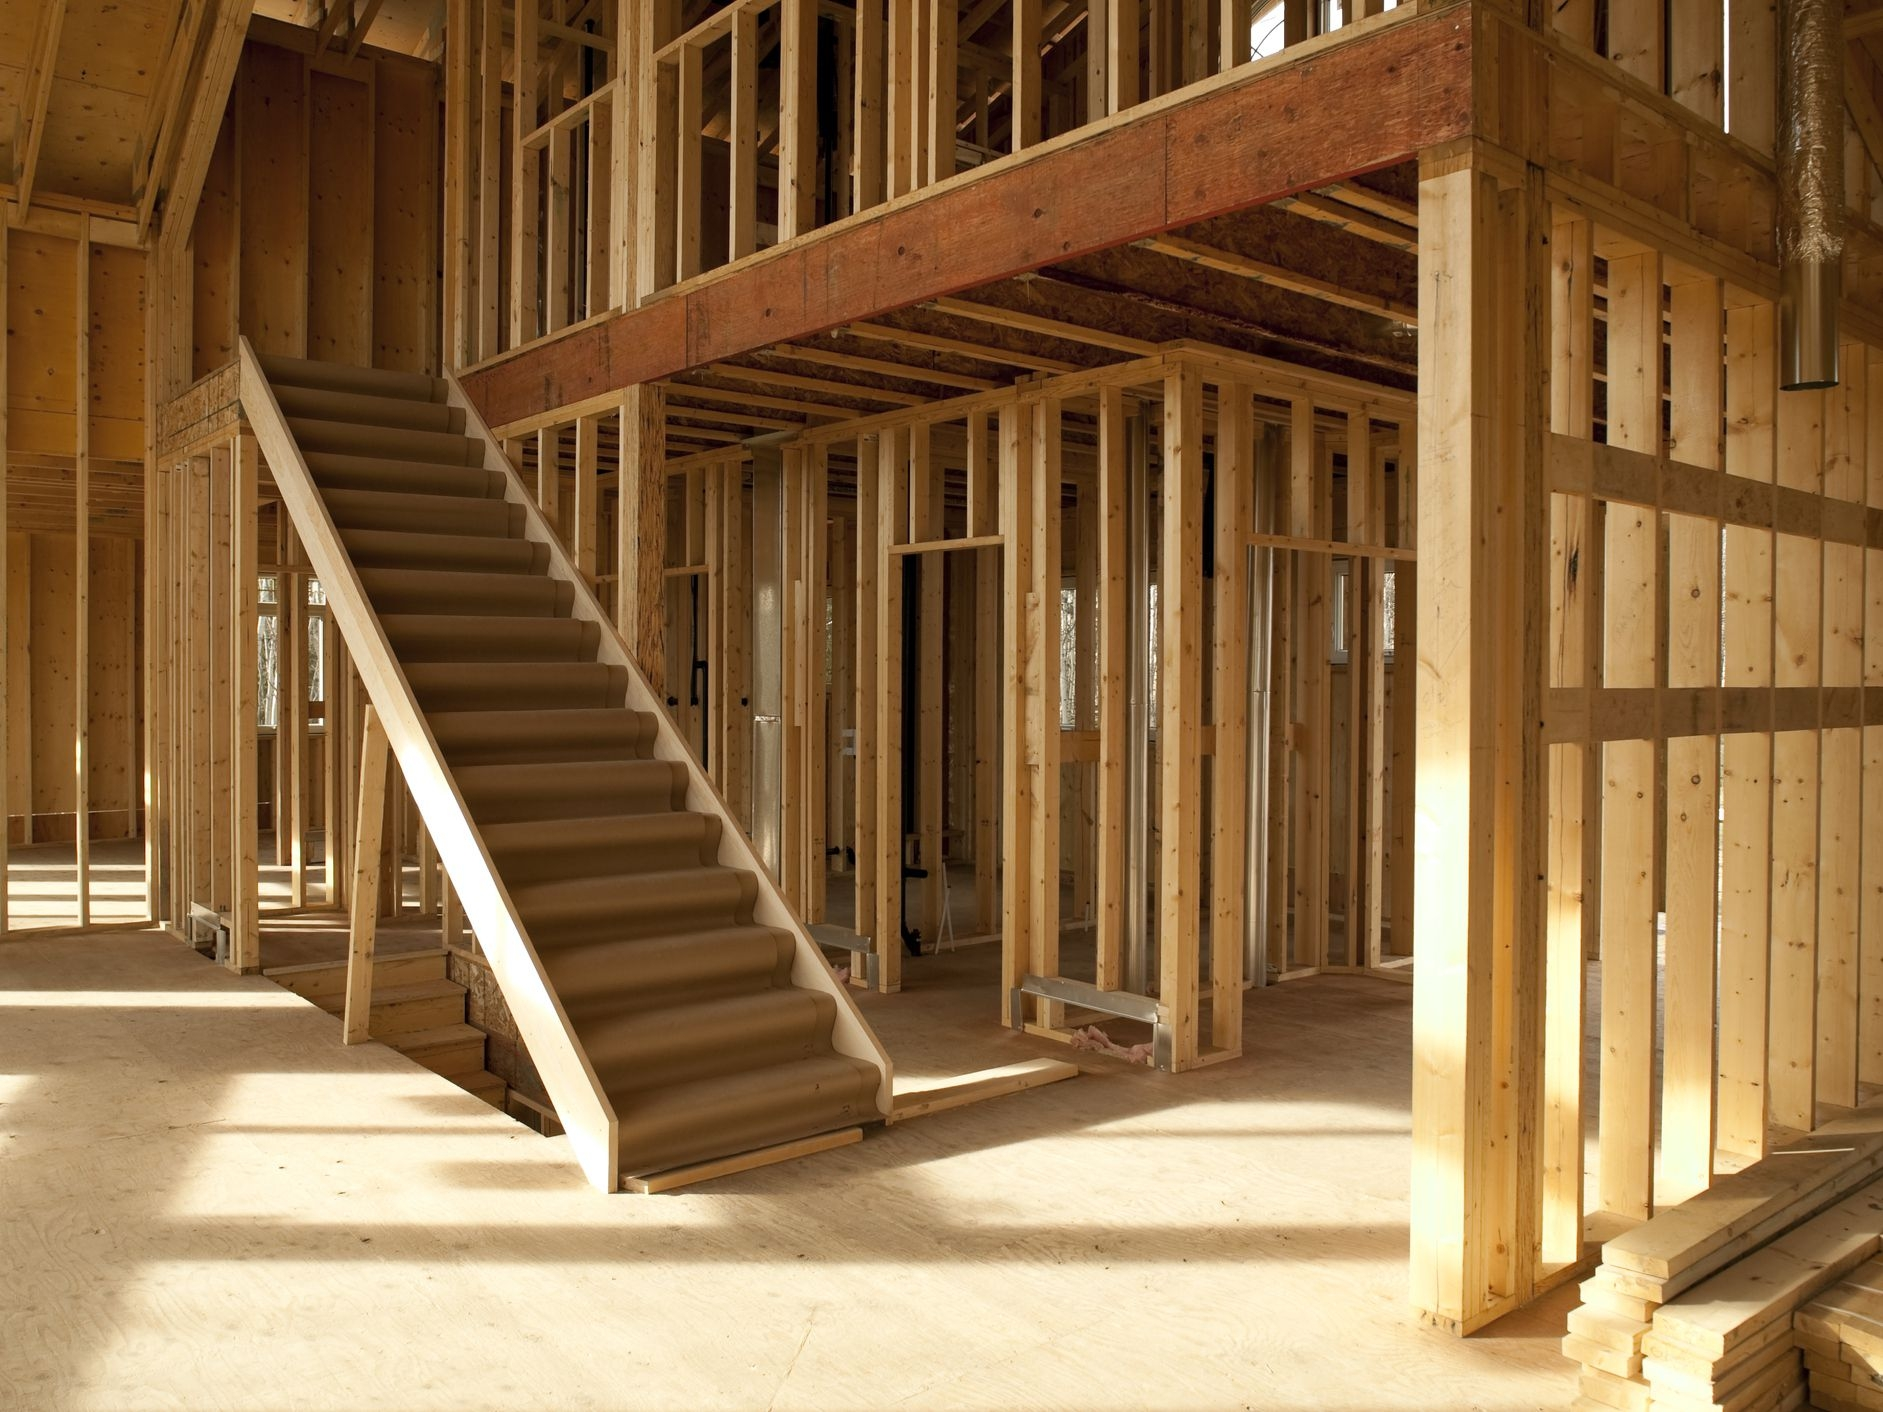 How To Keep Your Stairs Up To Code | Carpet For Garage Stairs | Concrete | Stair Riser | Concrete Stairs | Stair Runner | Garage Floor